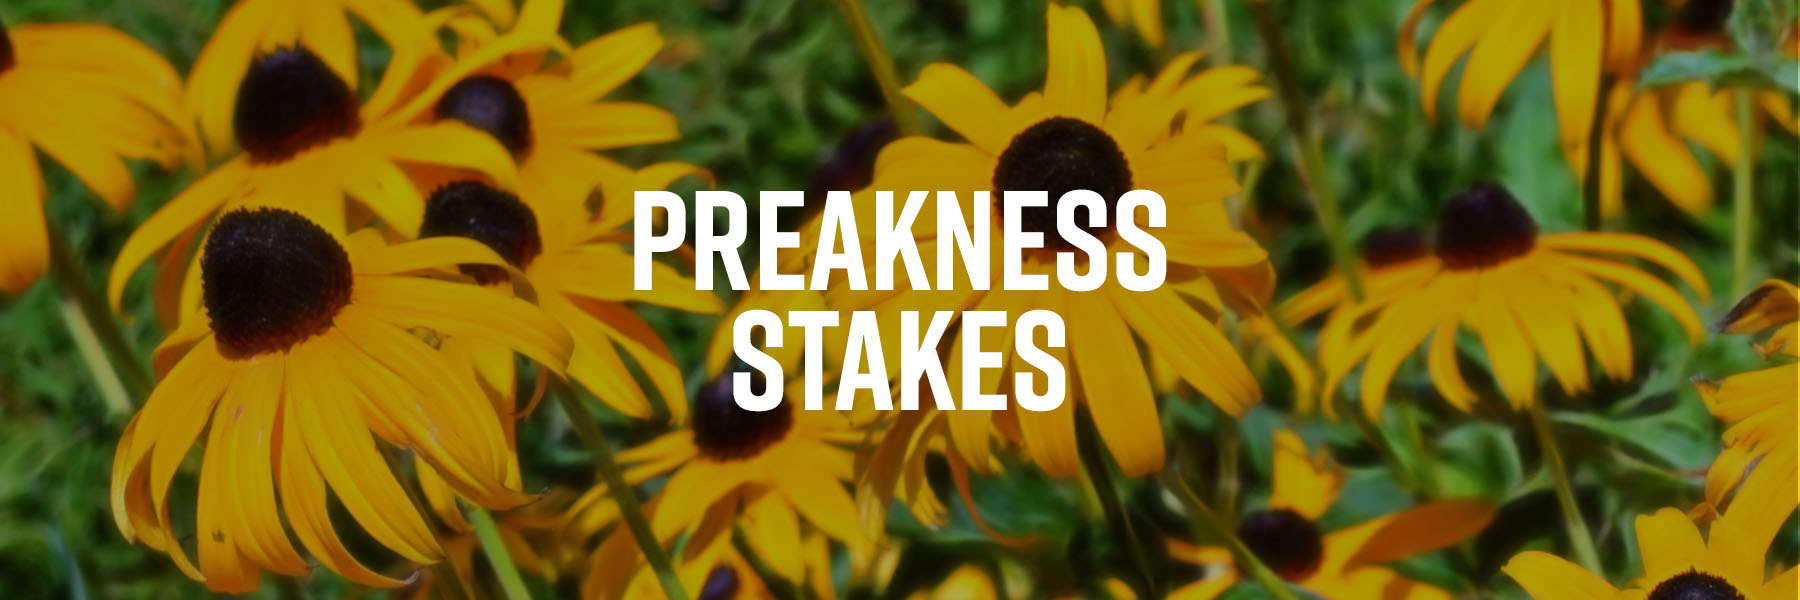 It's Post Time by Jon White: Preakness Stakes Selections